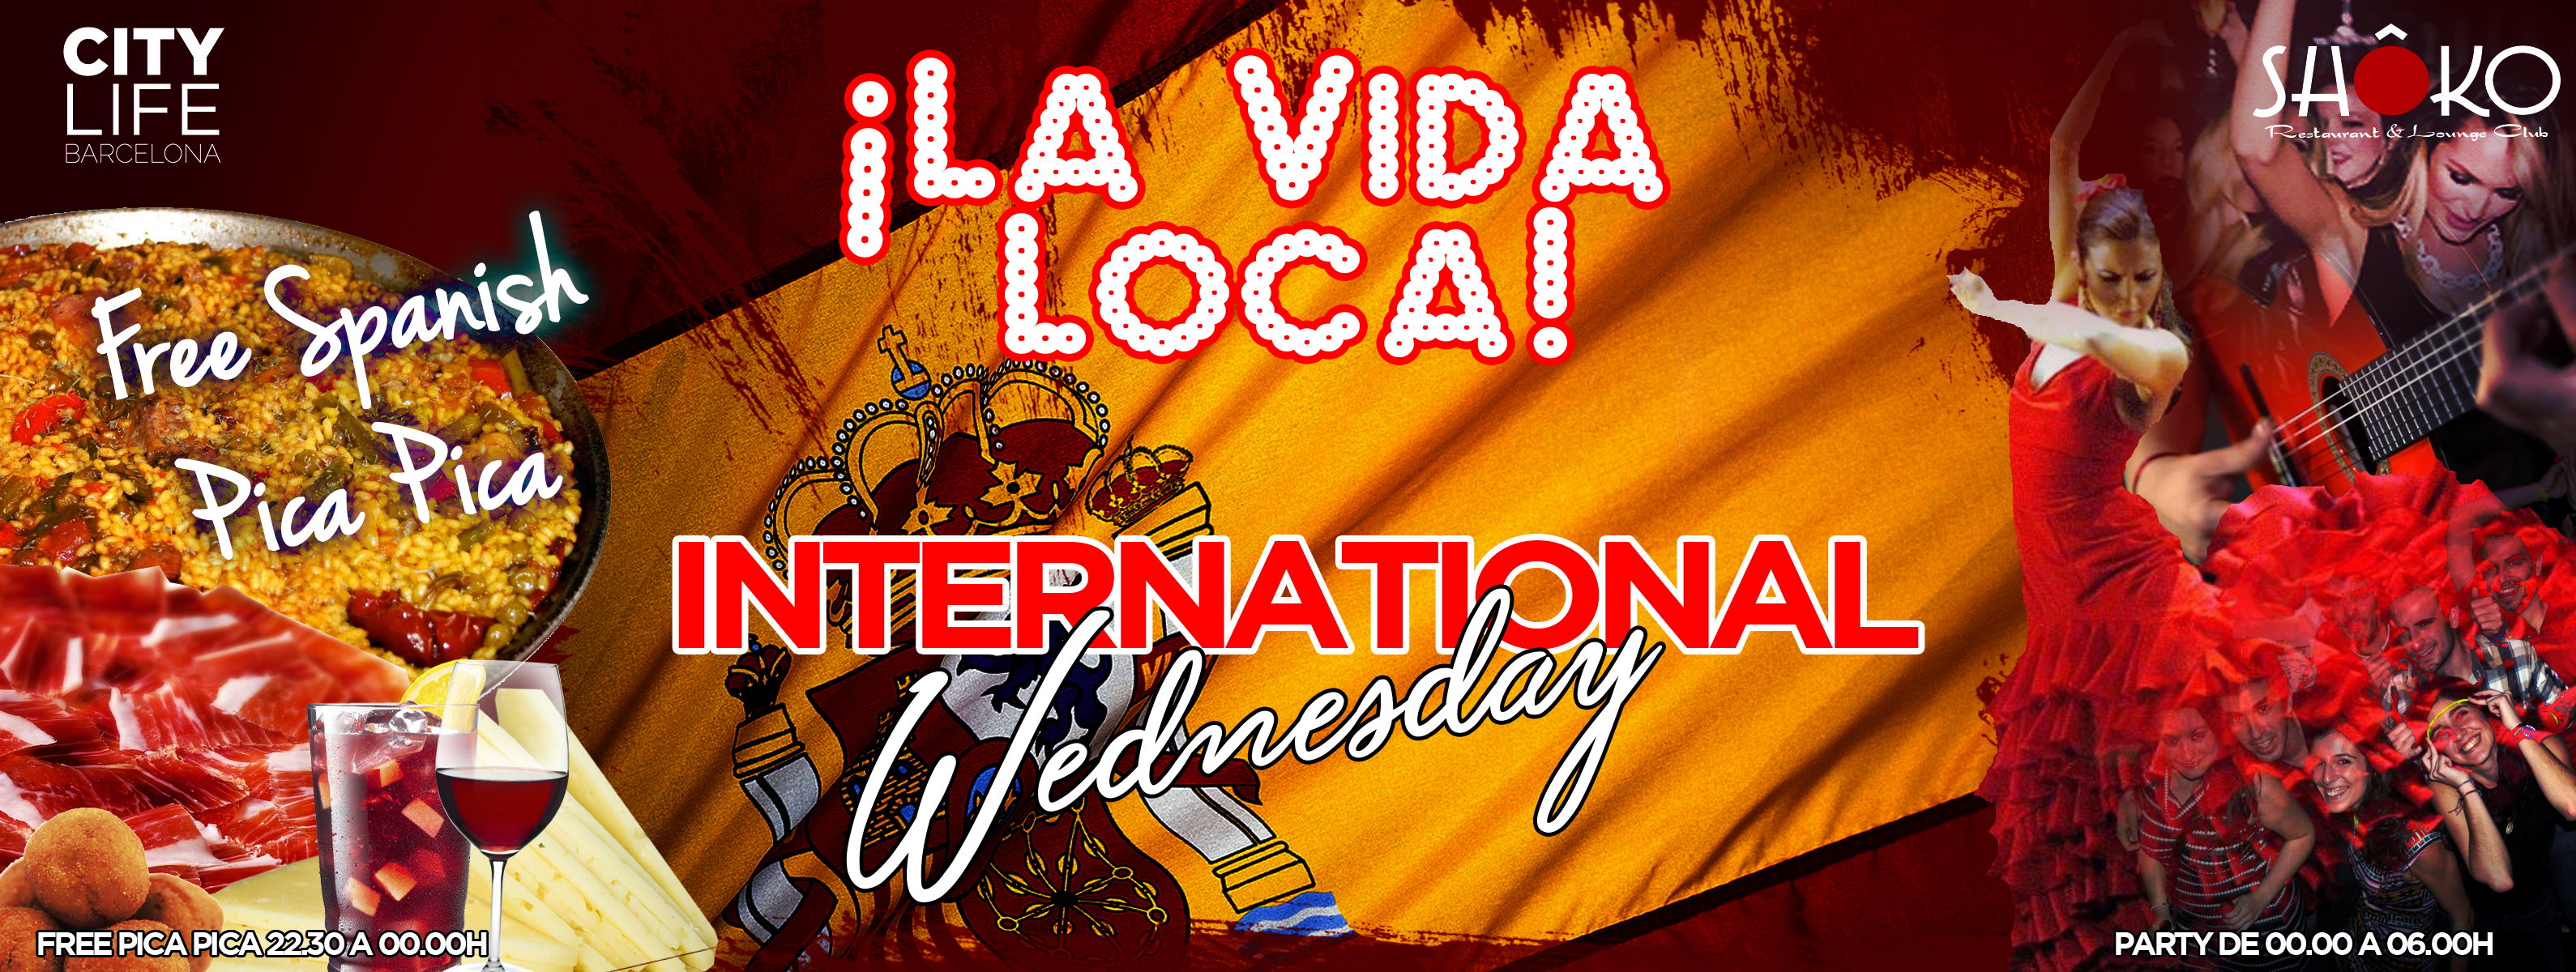 La Vida Loca – Free Dinner, Open Bar & Party! @Shoko Lounge Club!